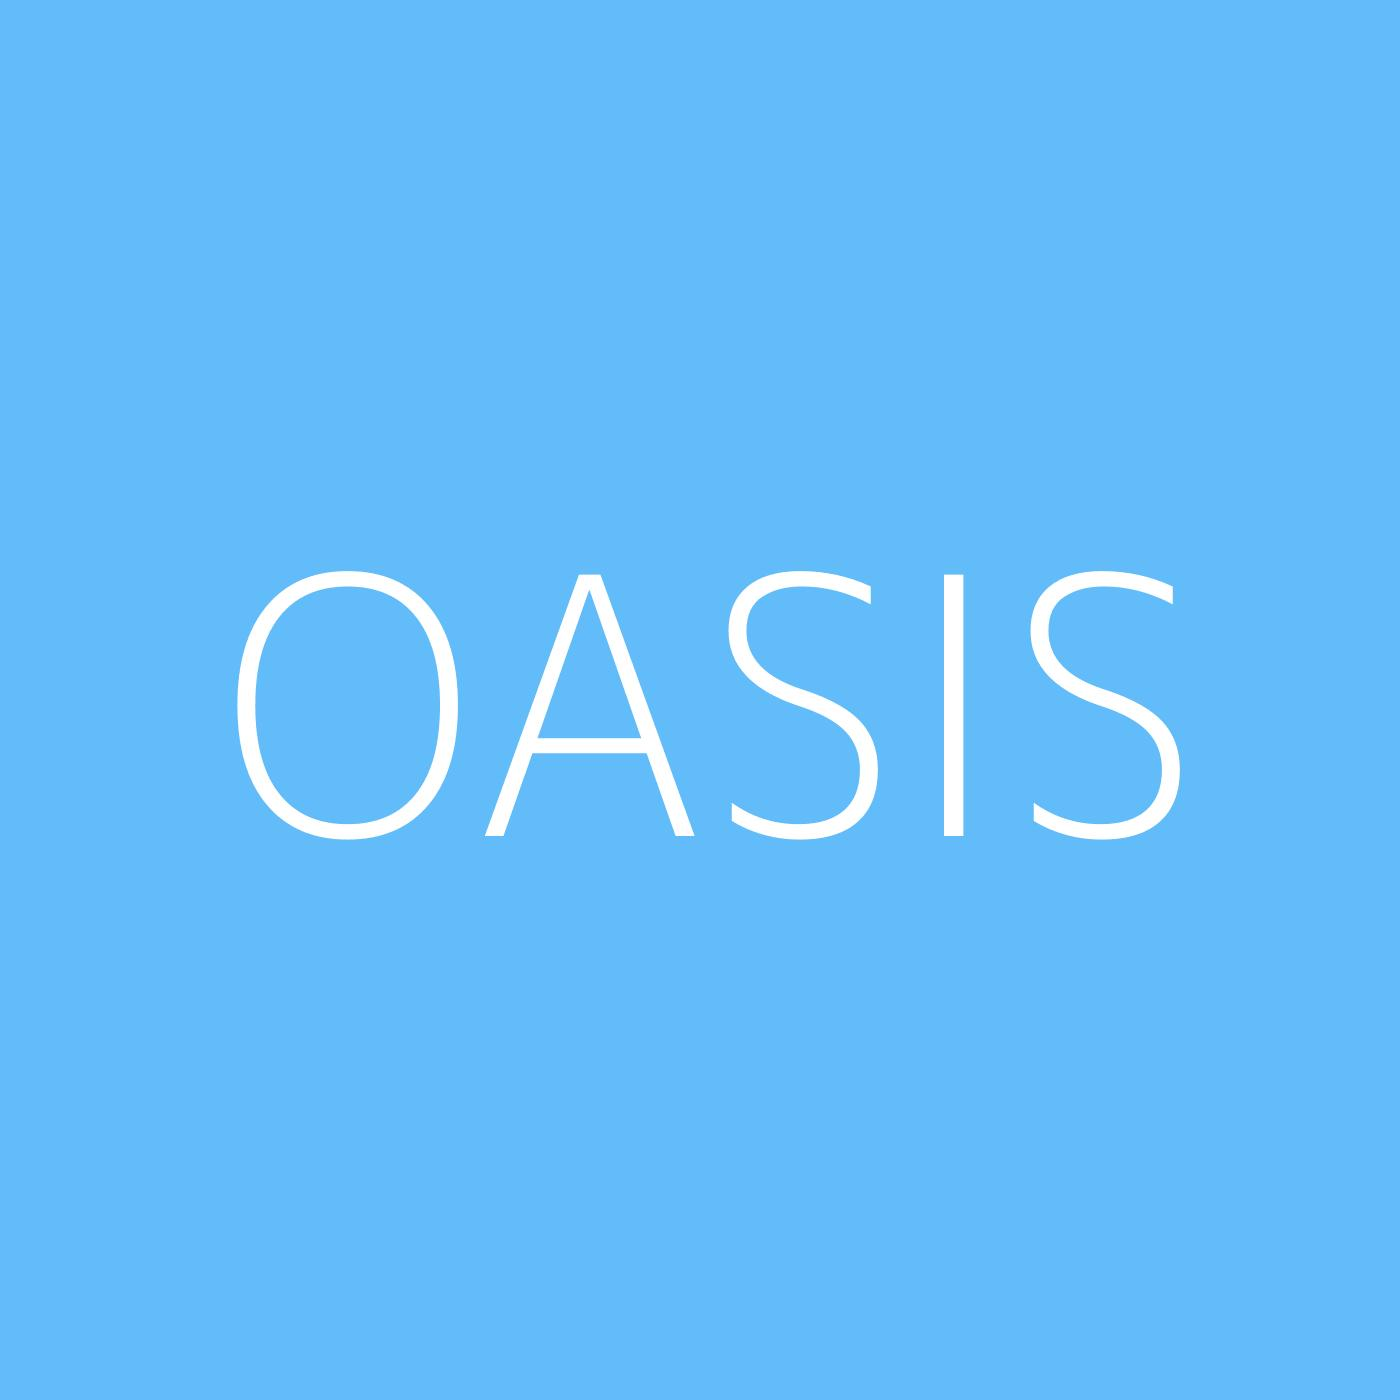 Oasis Playlist Artwork